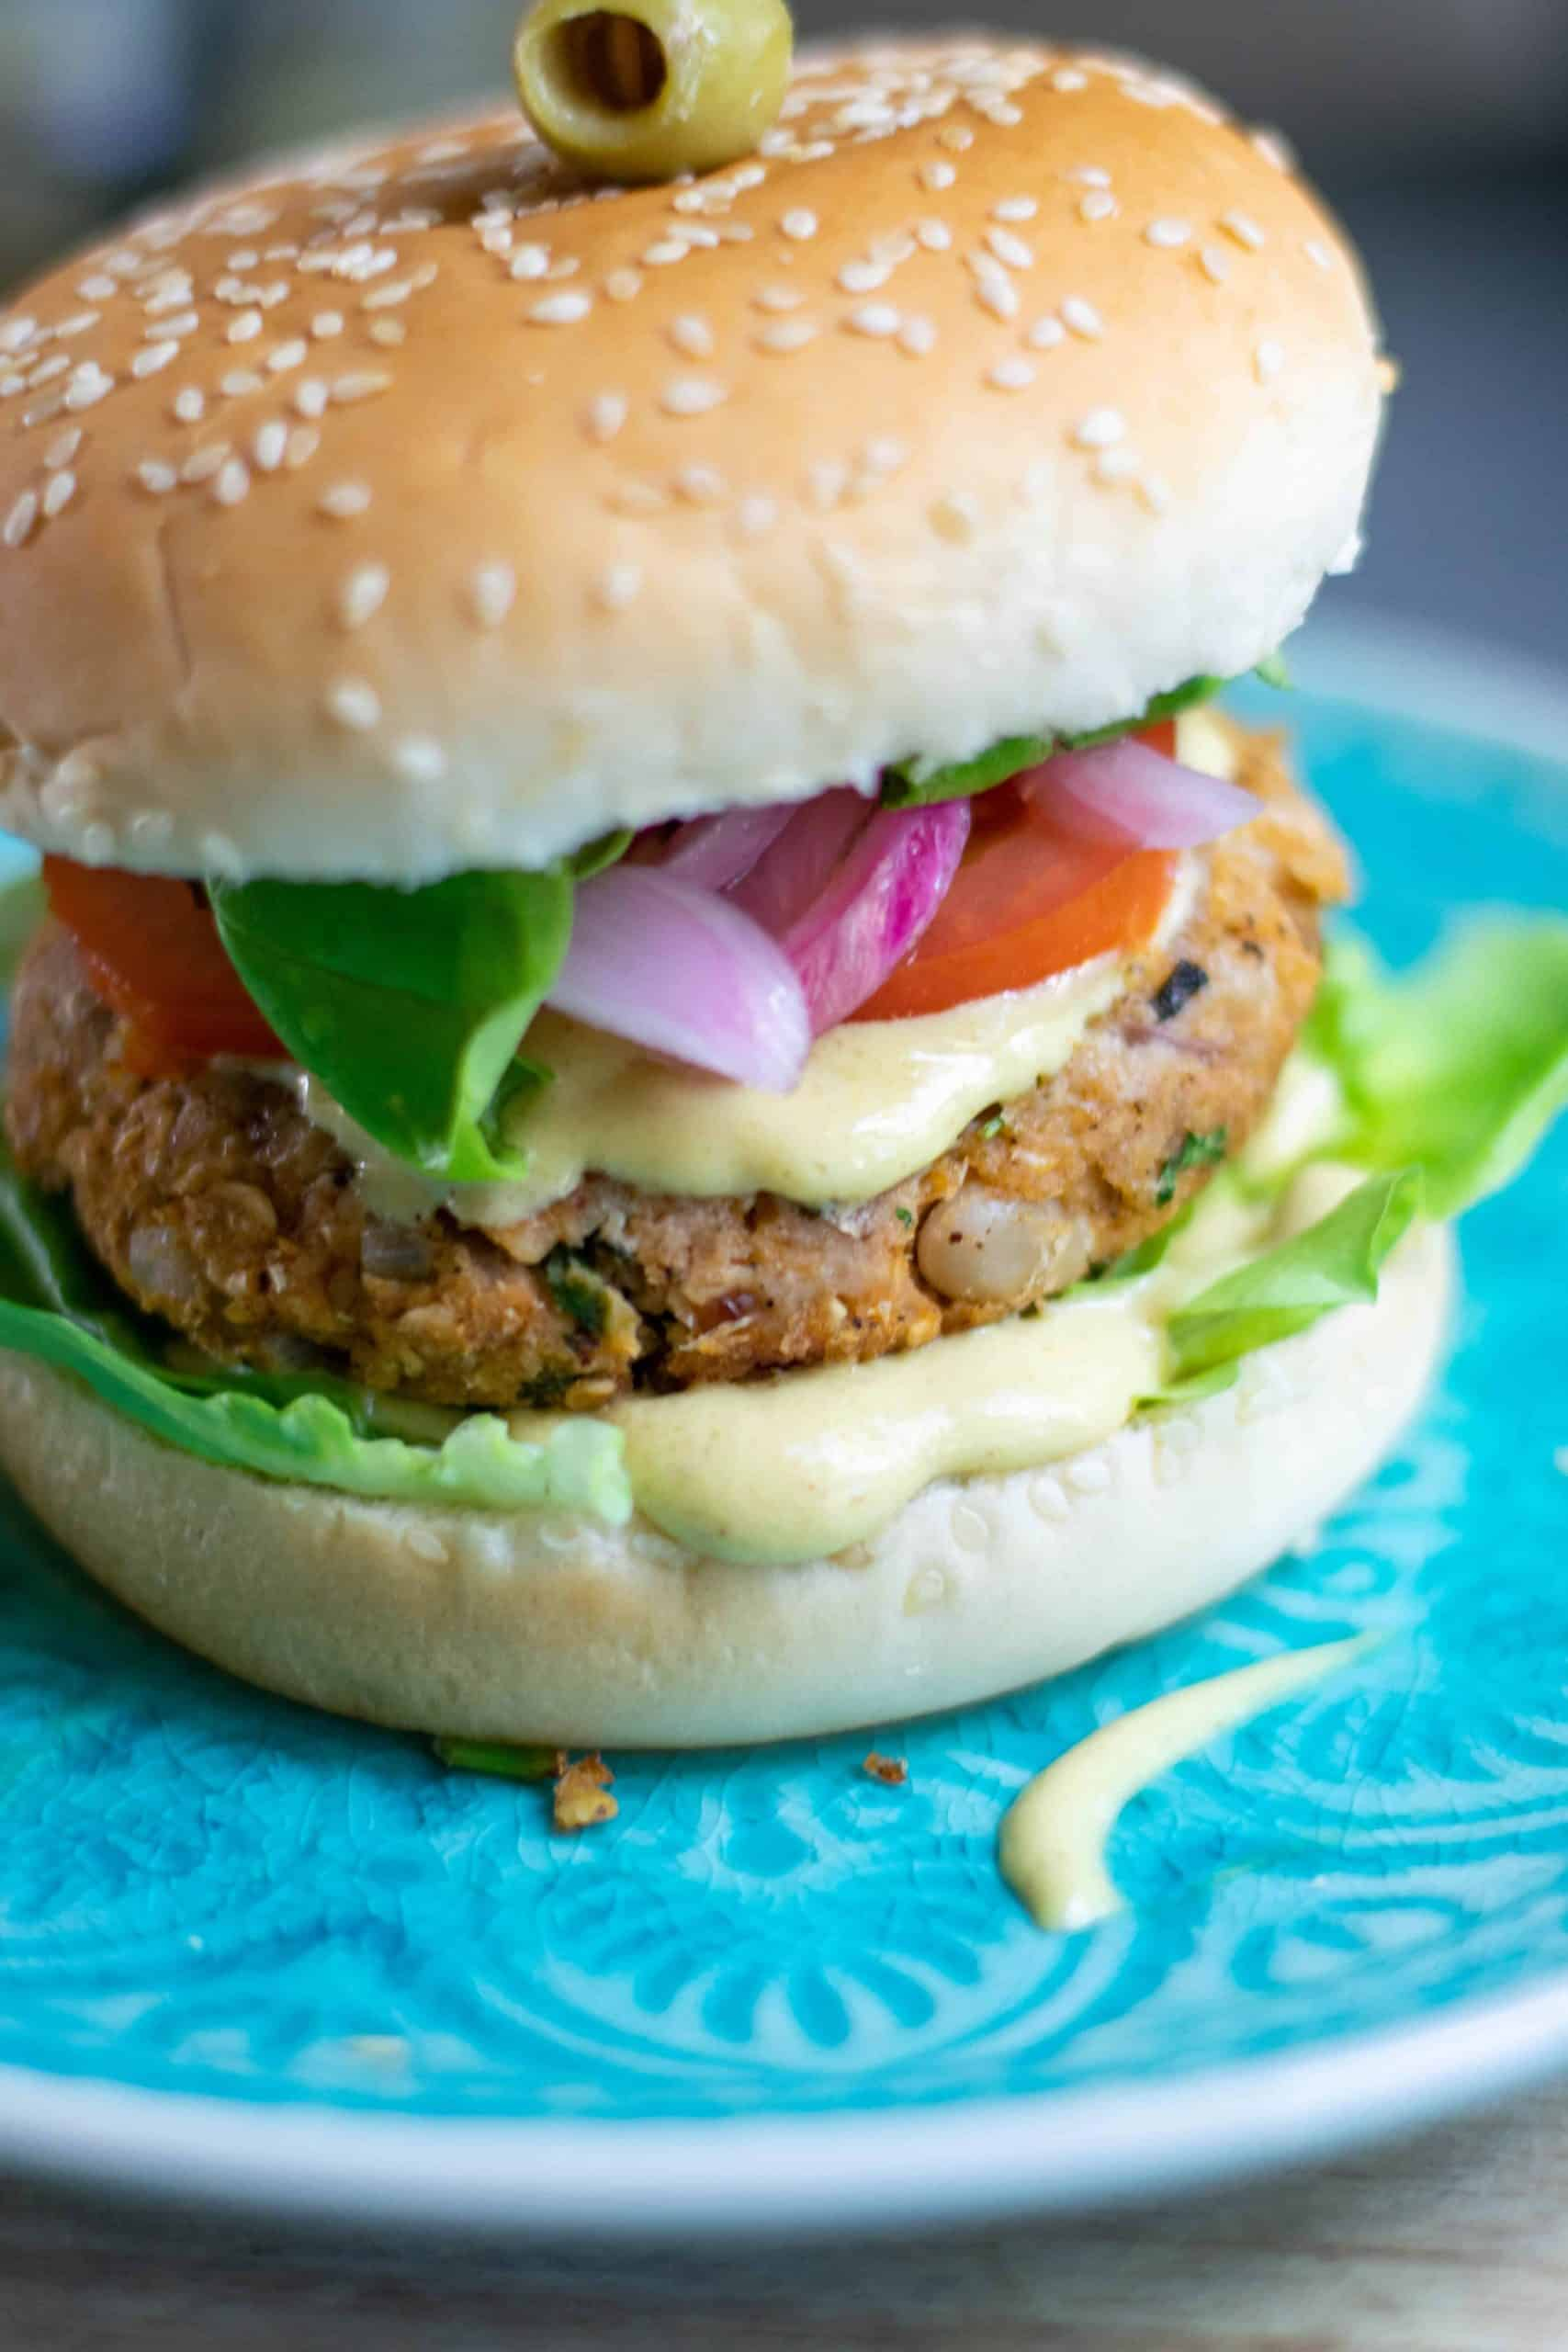 Angled photo of white bean burger on a blue plate.